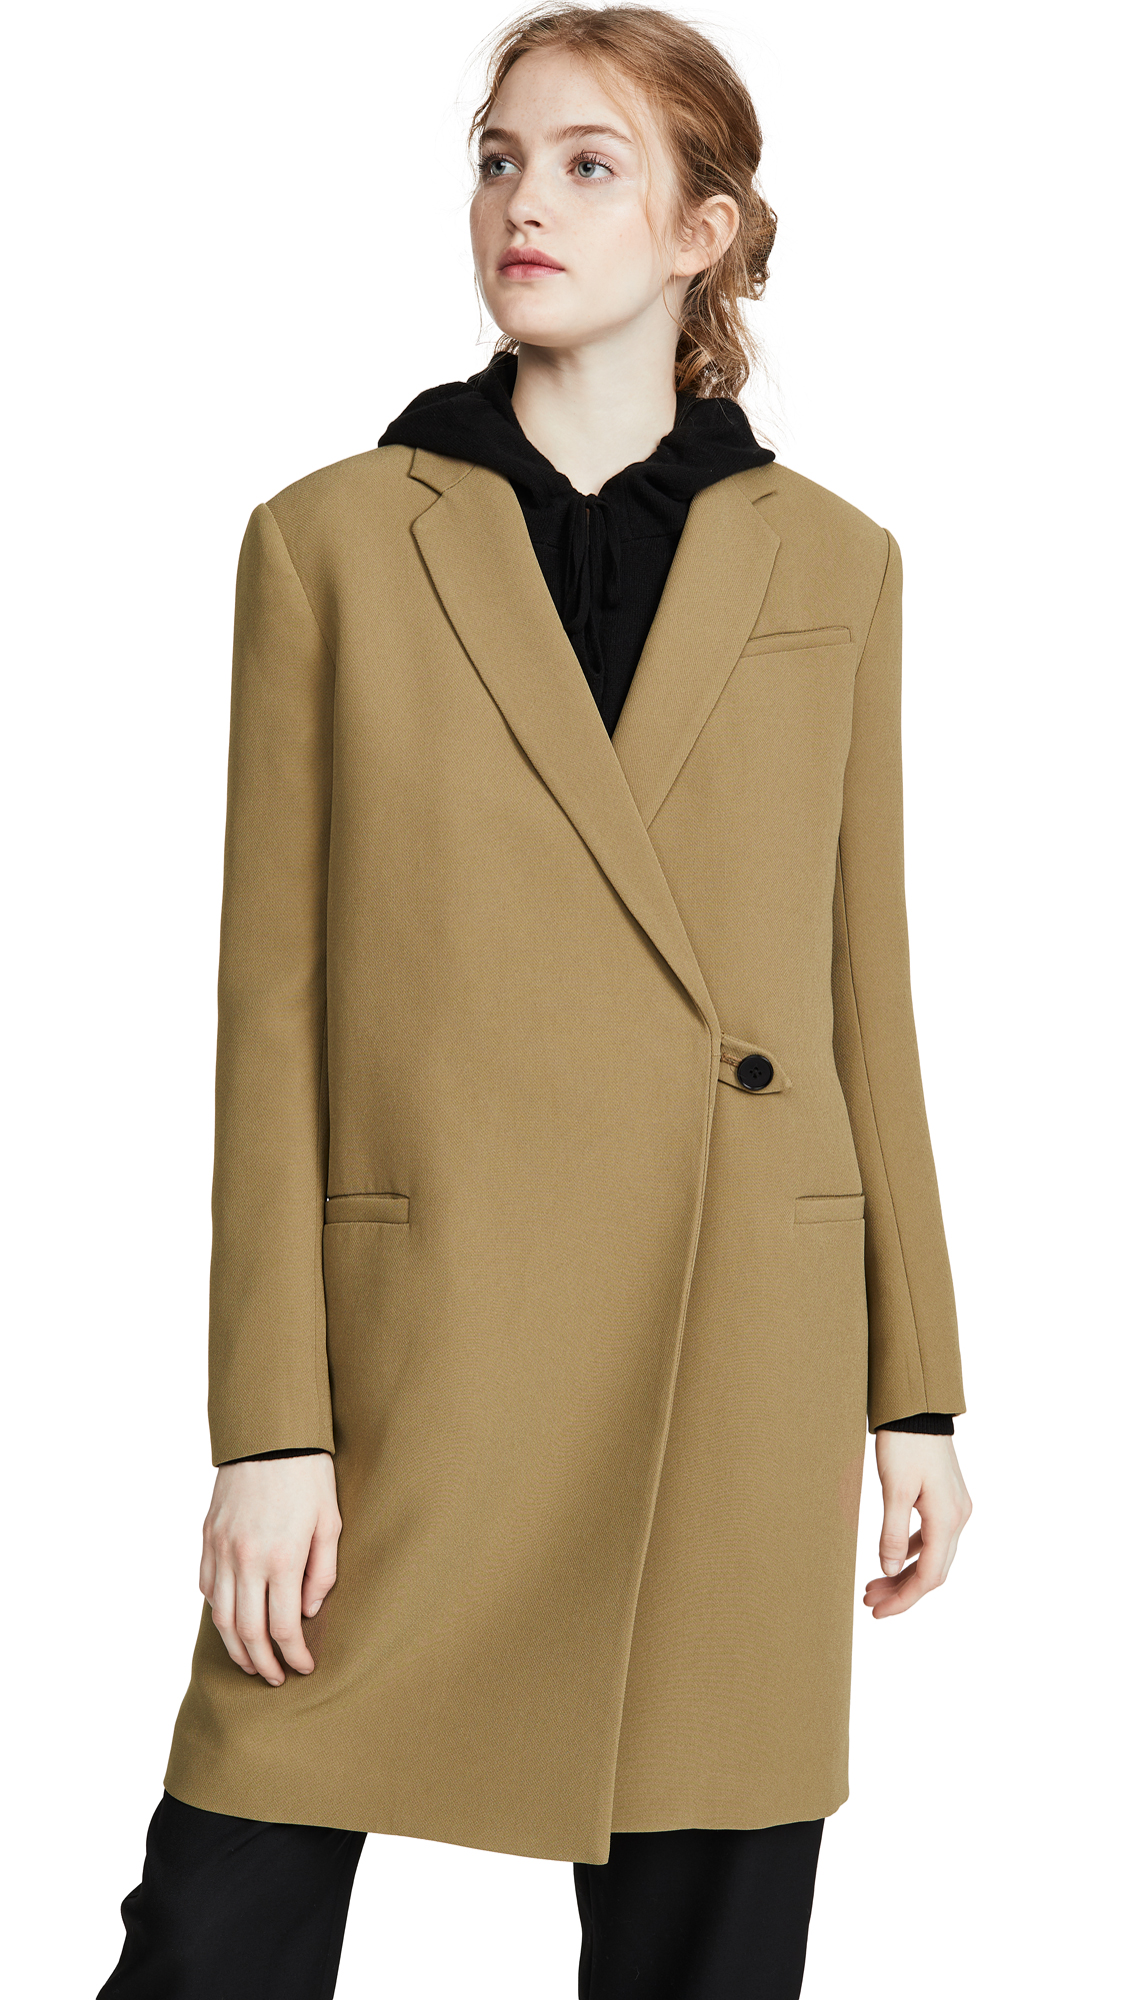 Buy 3.1 Phillip Lim Grandpa Coat online beautiful 3.1 Phillip Lim Clothing, Jackets